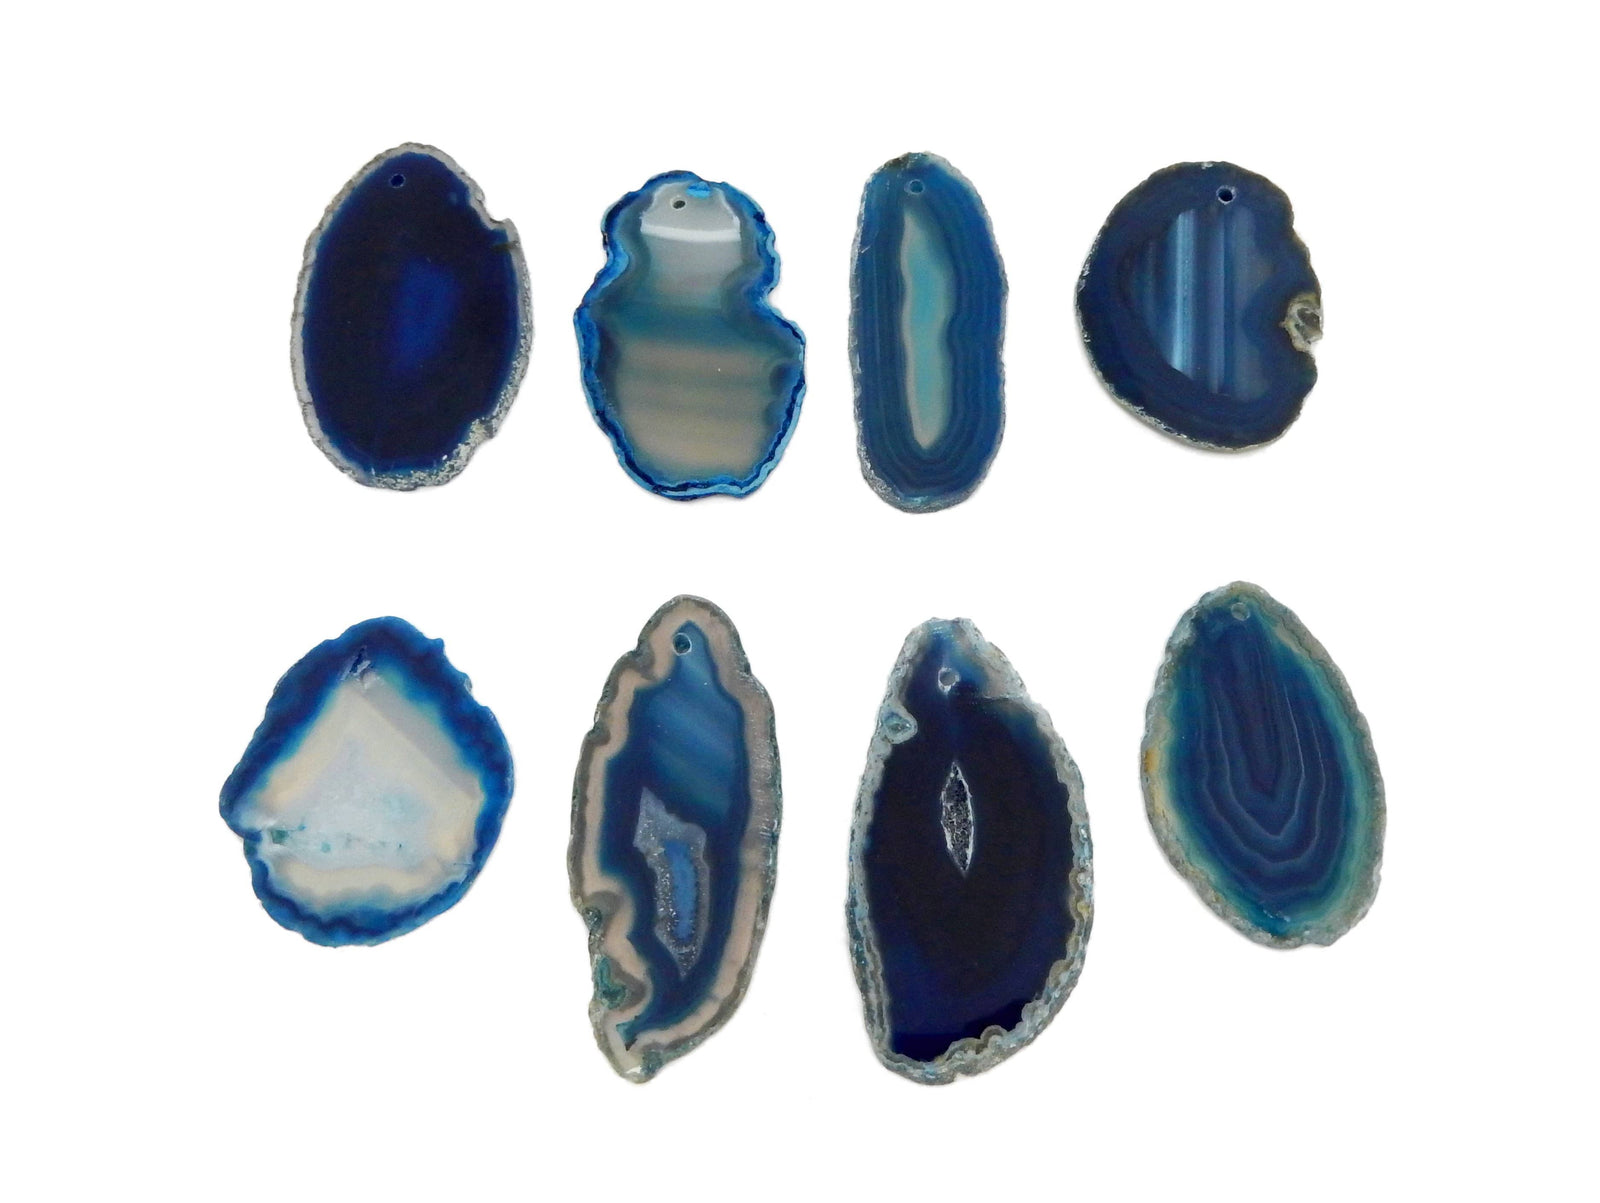 Agate Slices - Drilled AGATE SLICES BY COLOR- Perfect For Gift, Art Projects Supplies - Brazilian Agate - Pendant Size #00 (RK185)